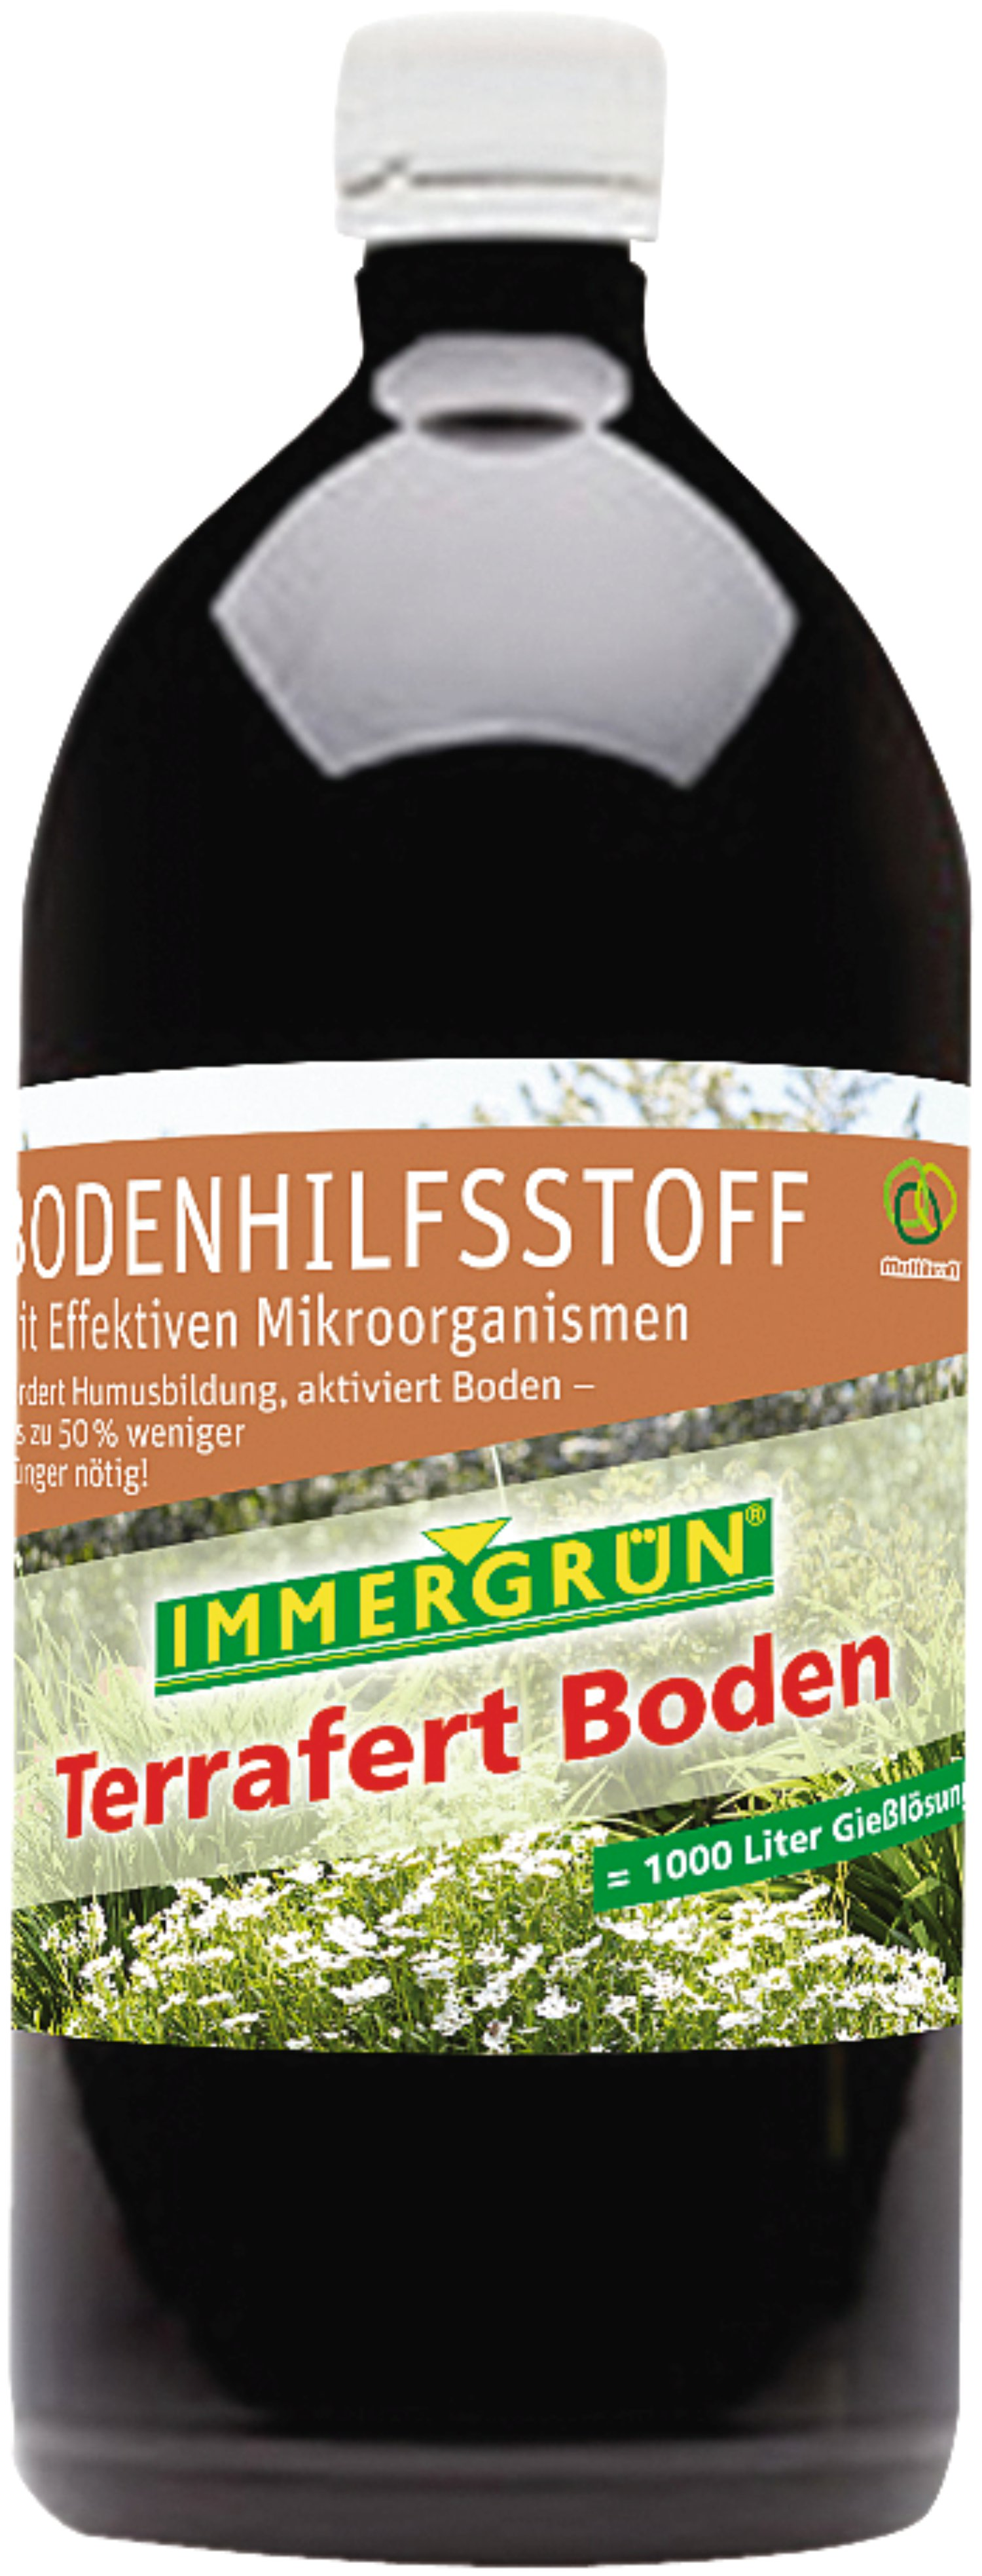 immergr n bio effektive mikroorganismen terrafert boden 500 ml lagerhaus. Black Bedroom Furniture Sets. Home Design Ideas